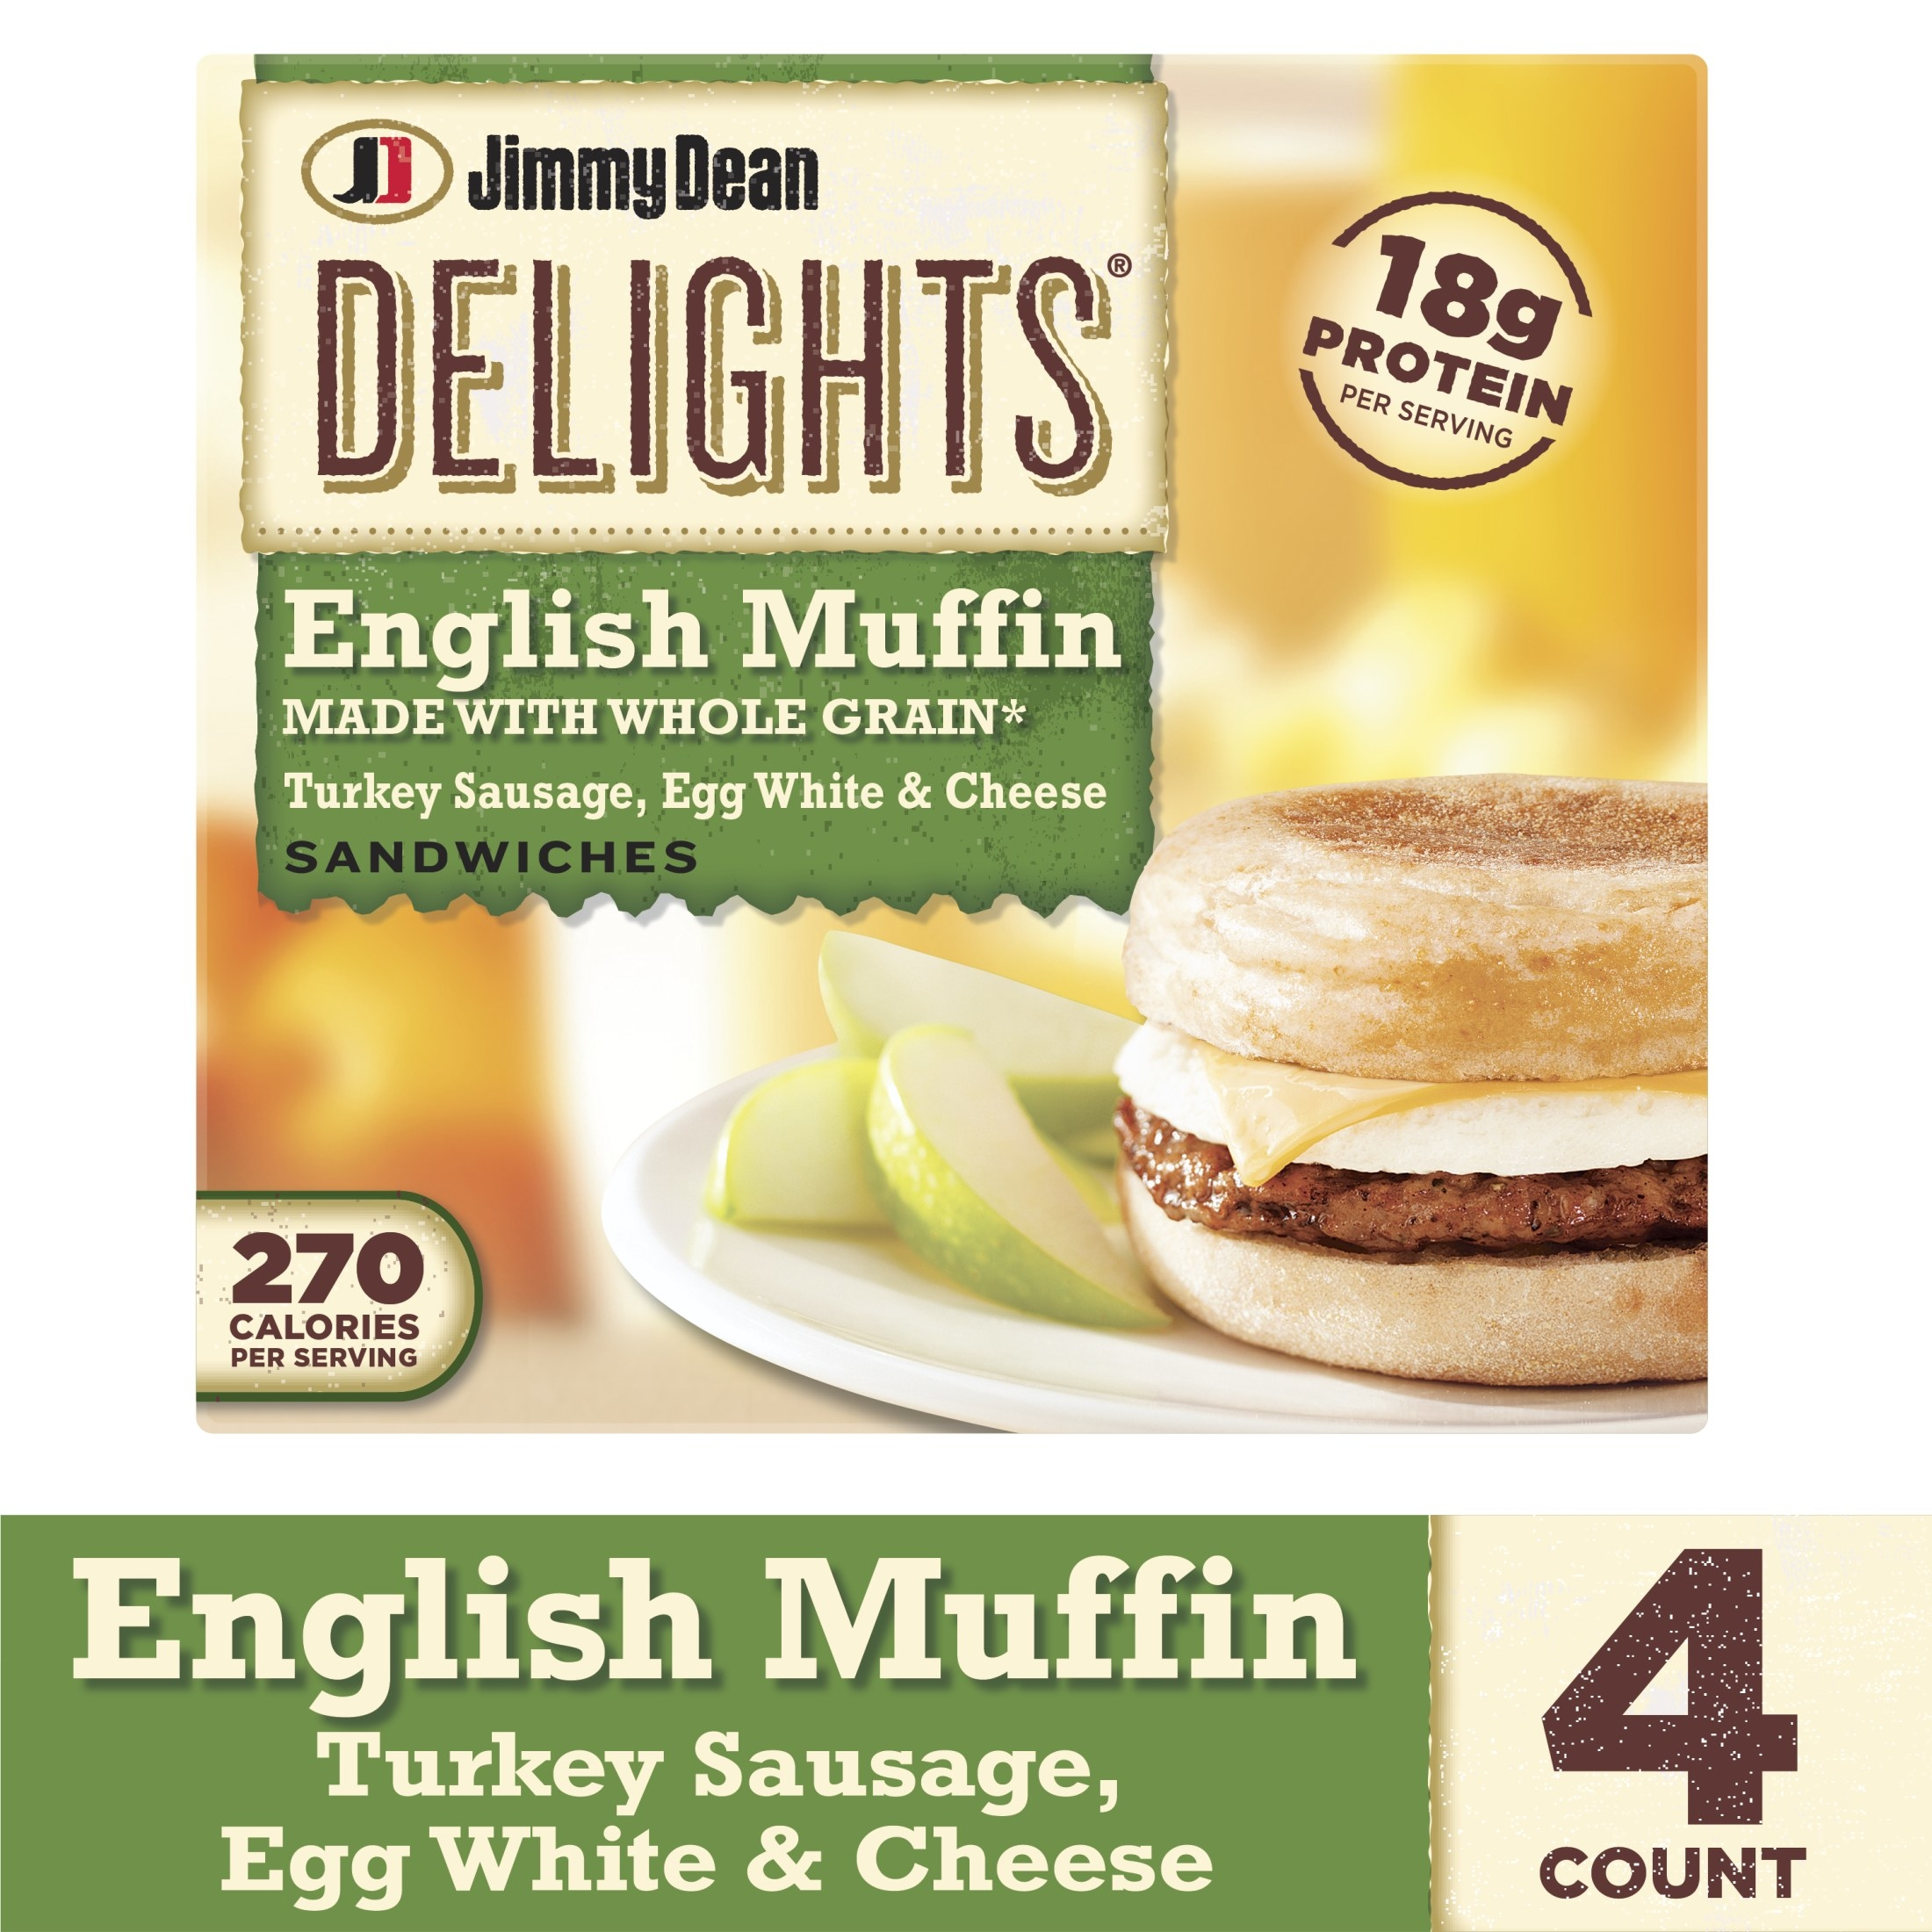 4 pack of Jimmy Dean Delights english muffin, turkey sausage, egg white & cheese breakfast sandwiches